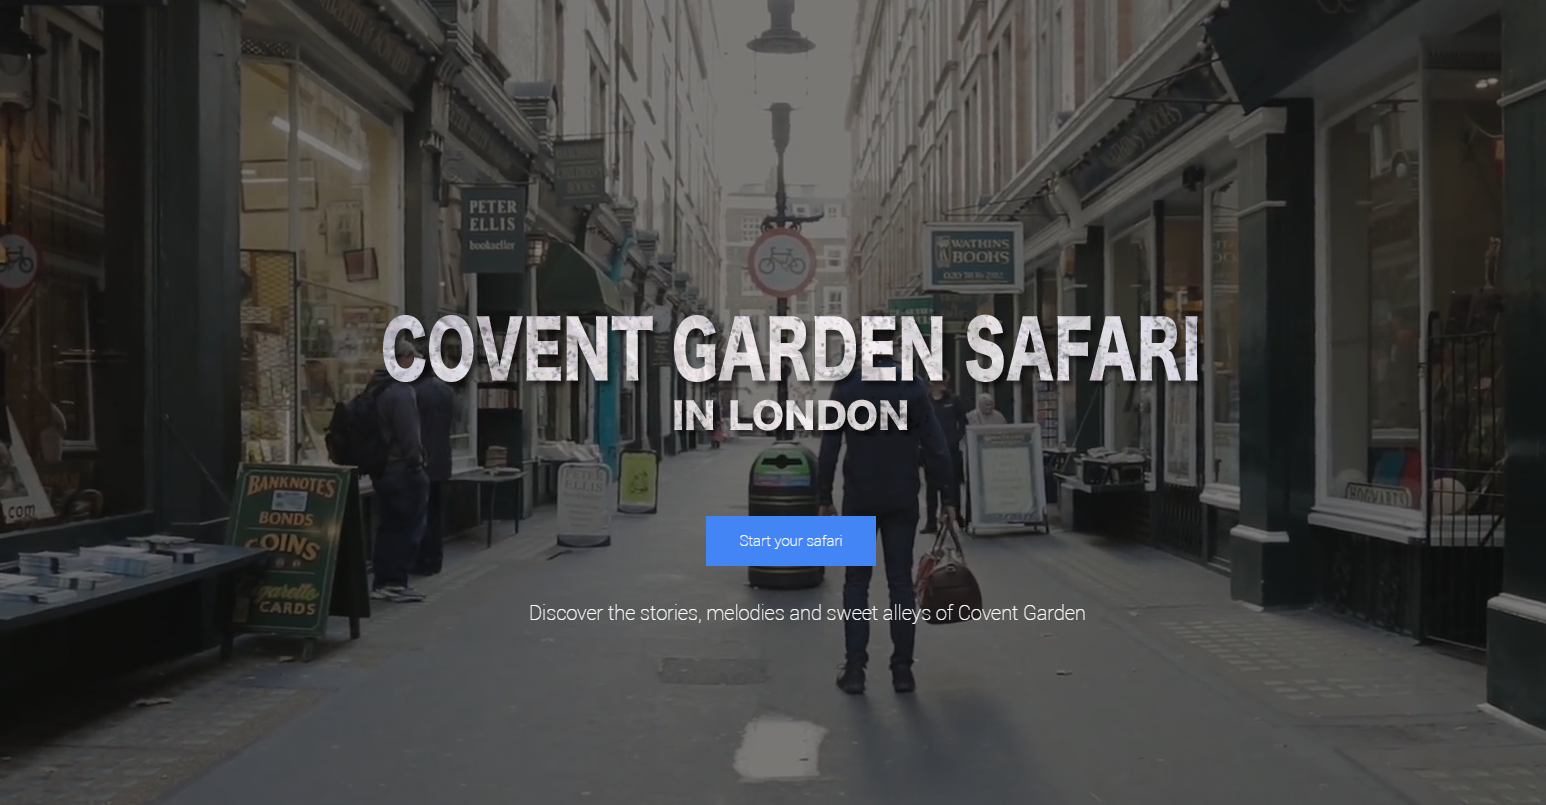 Safari in Covent Garden London